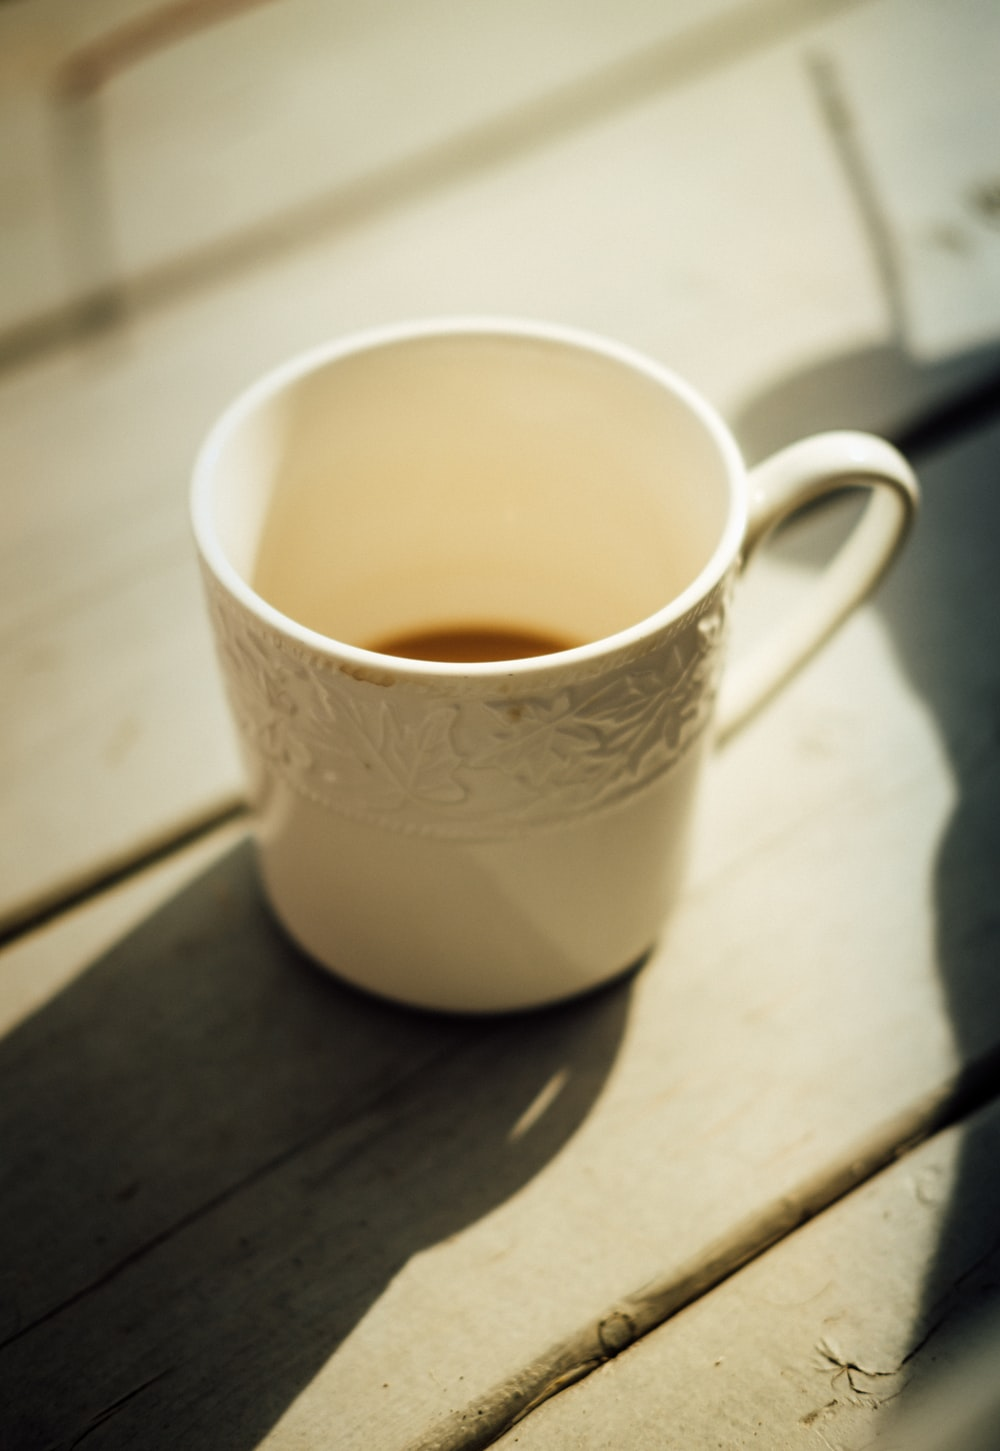 white ceramic coffee cup close-up photography